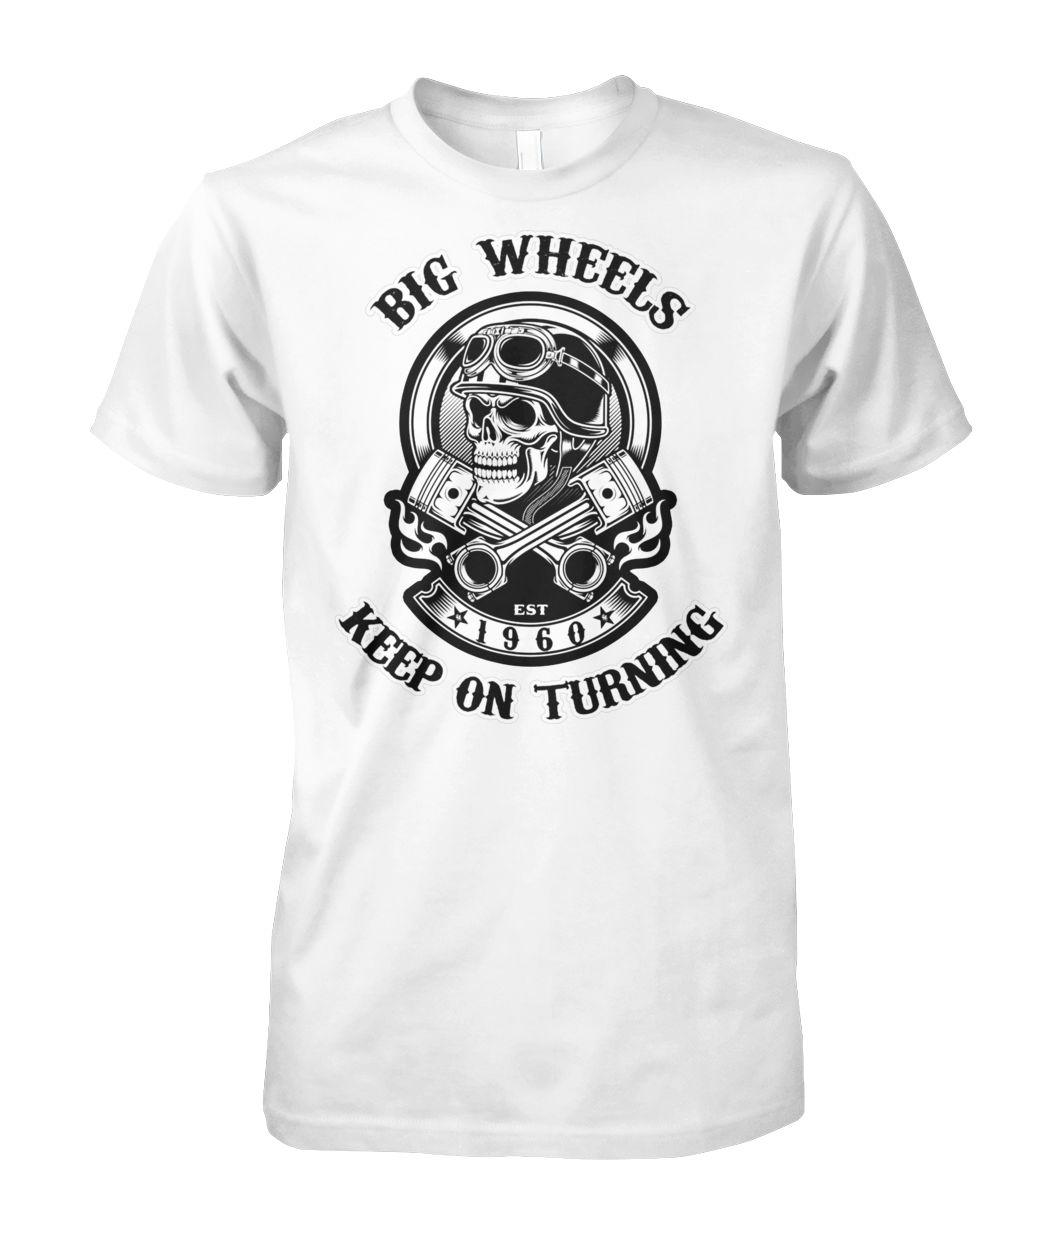 1960 big wheels keep on turning biker skull with crossed pistons unisex cotton tee